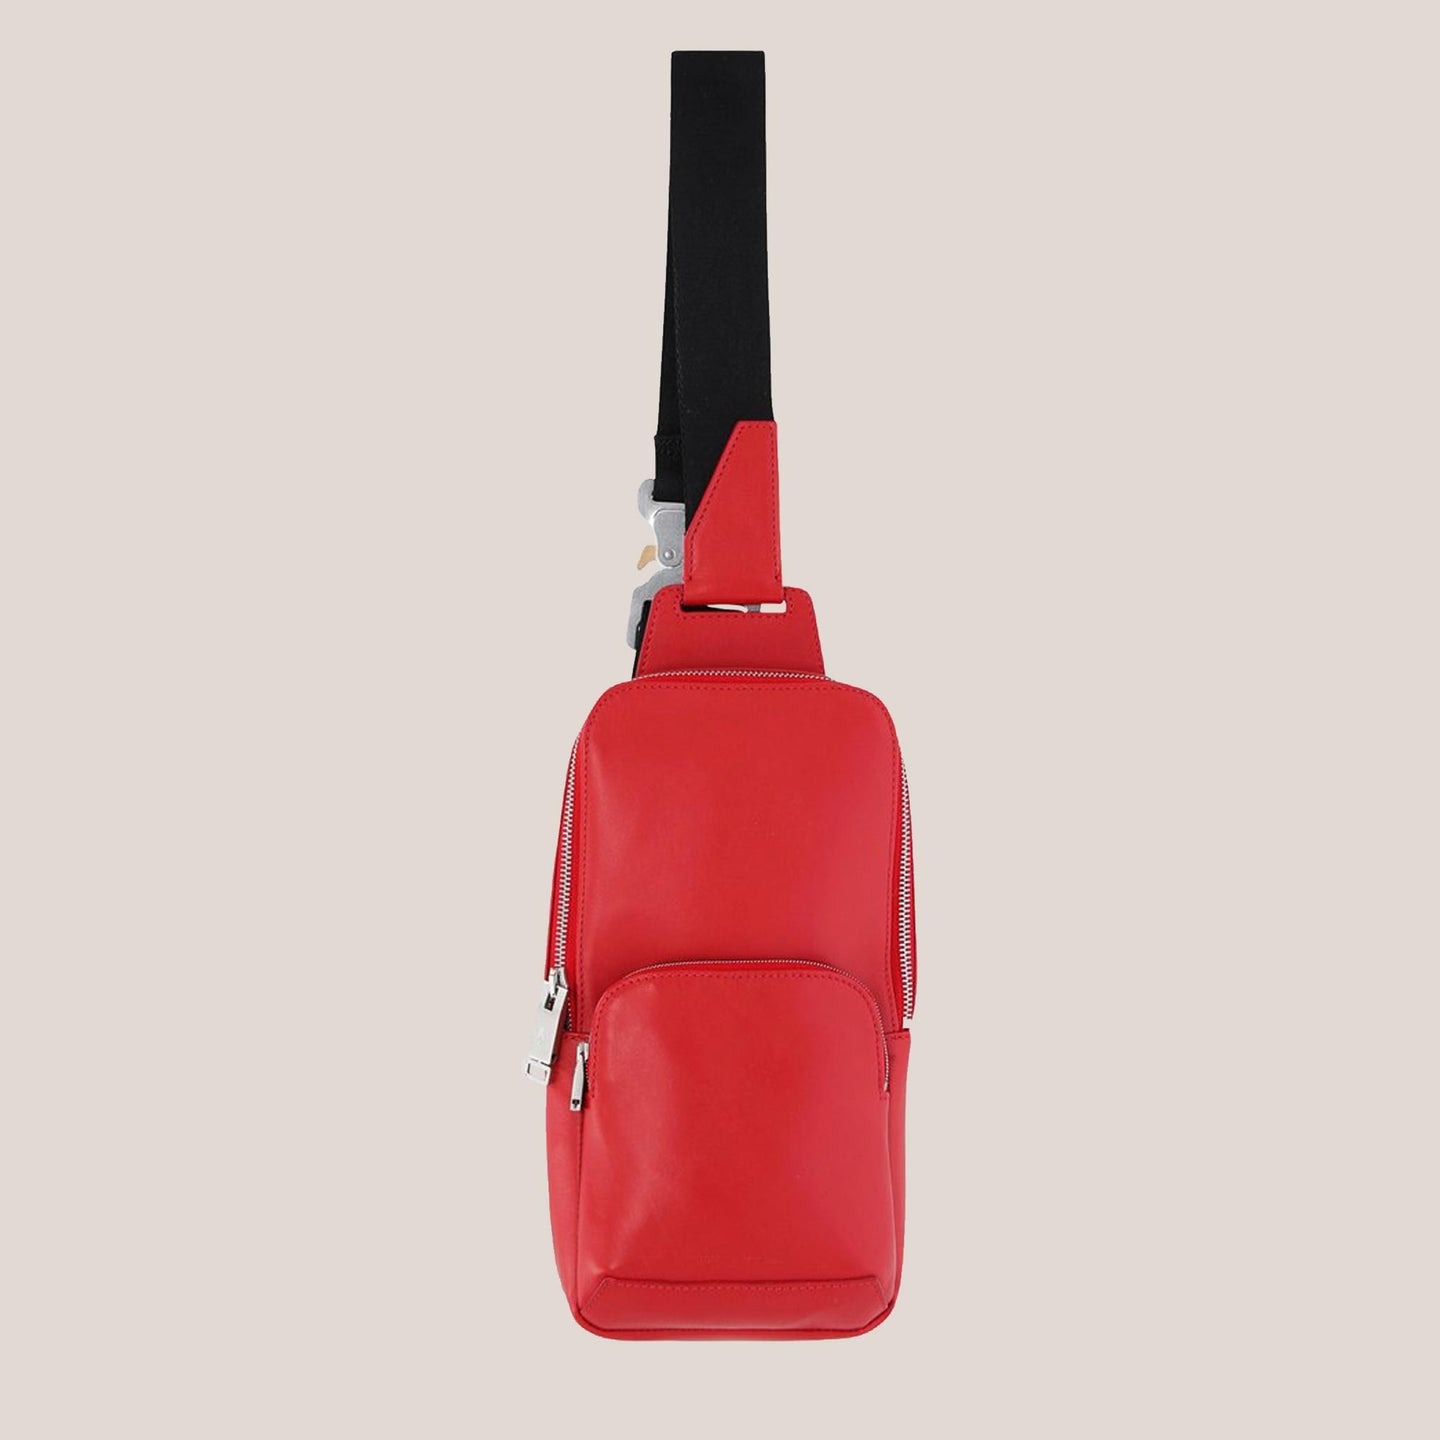 1017 Alyx 9SM - Small Crossbody Bag in Red, front view, available at LCD.